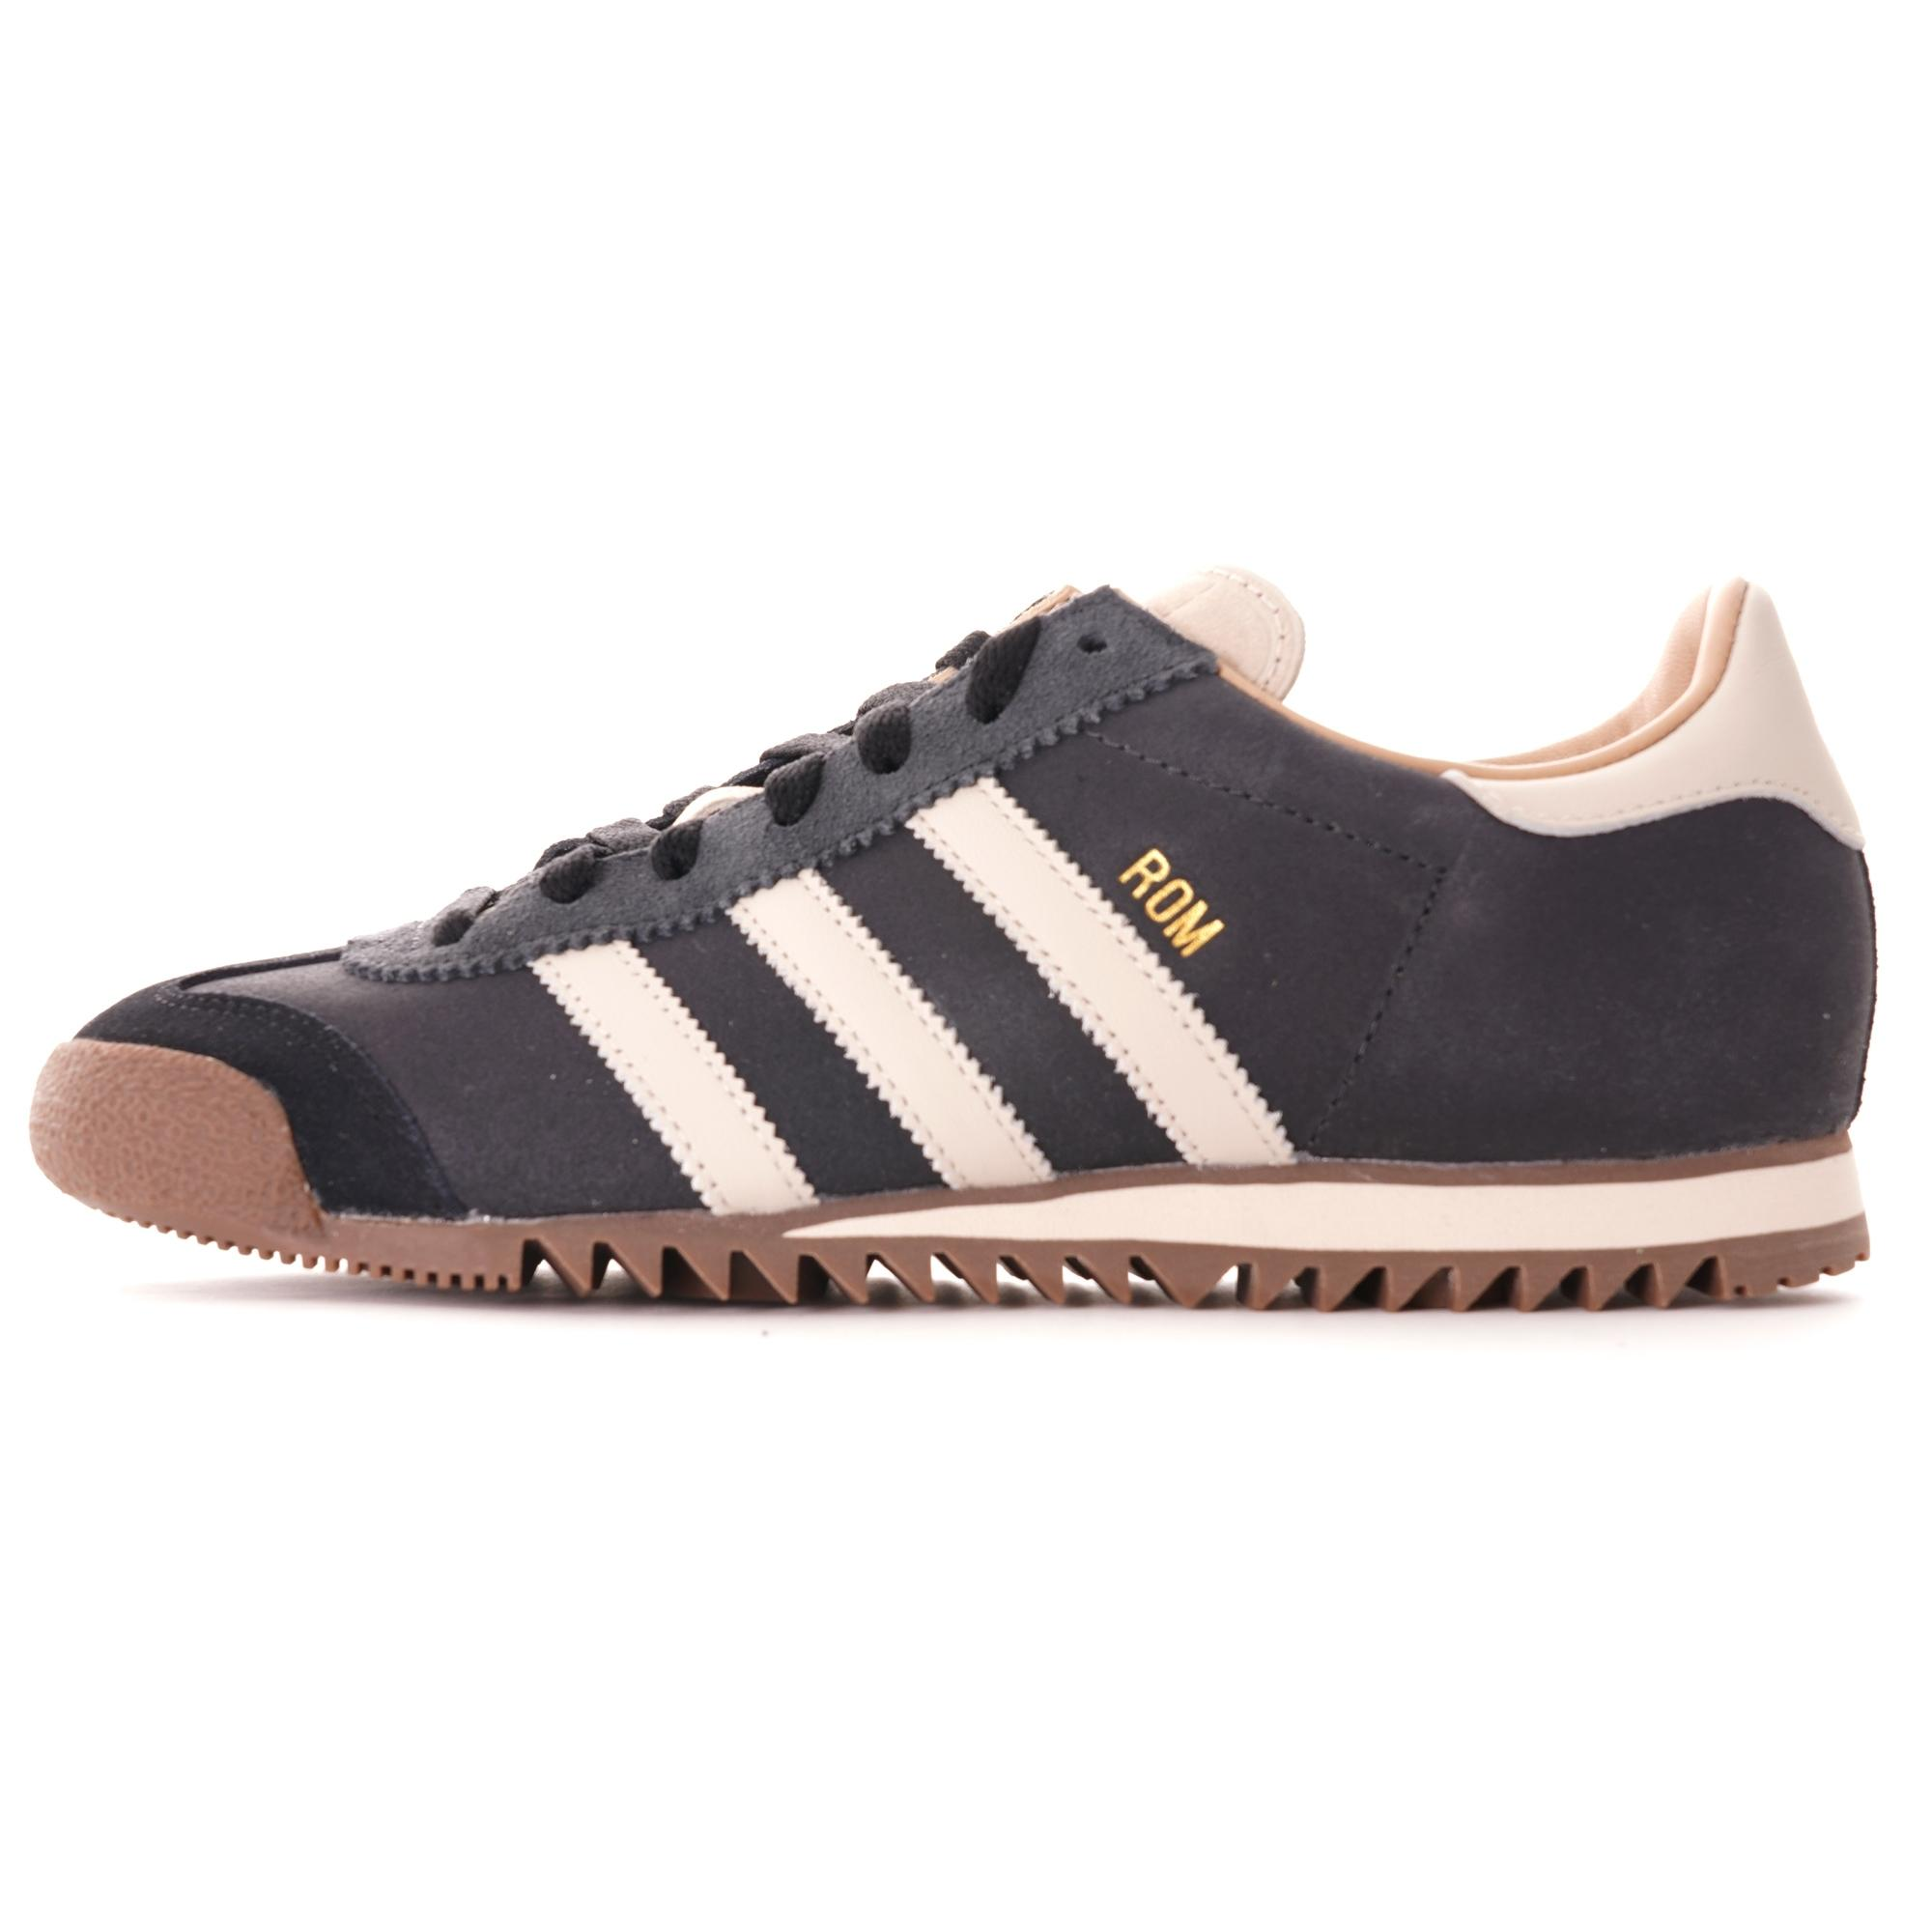 adidas Originals Leather Rom Shoes for